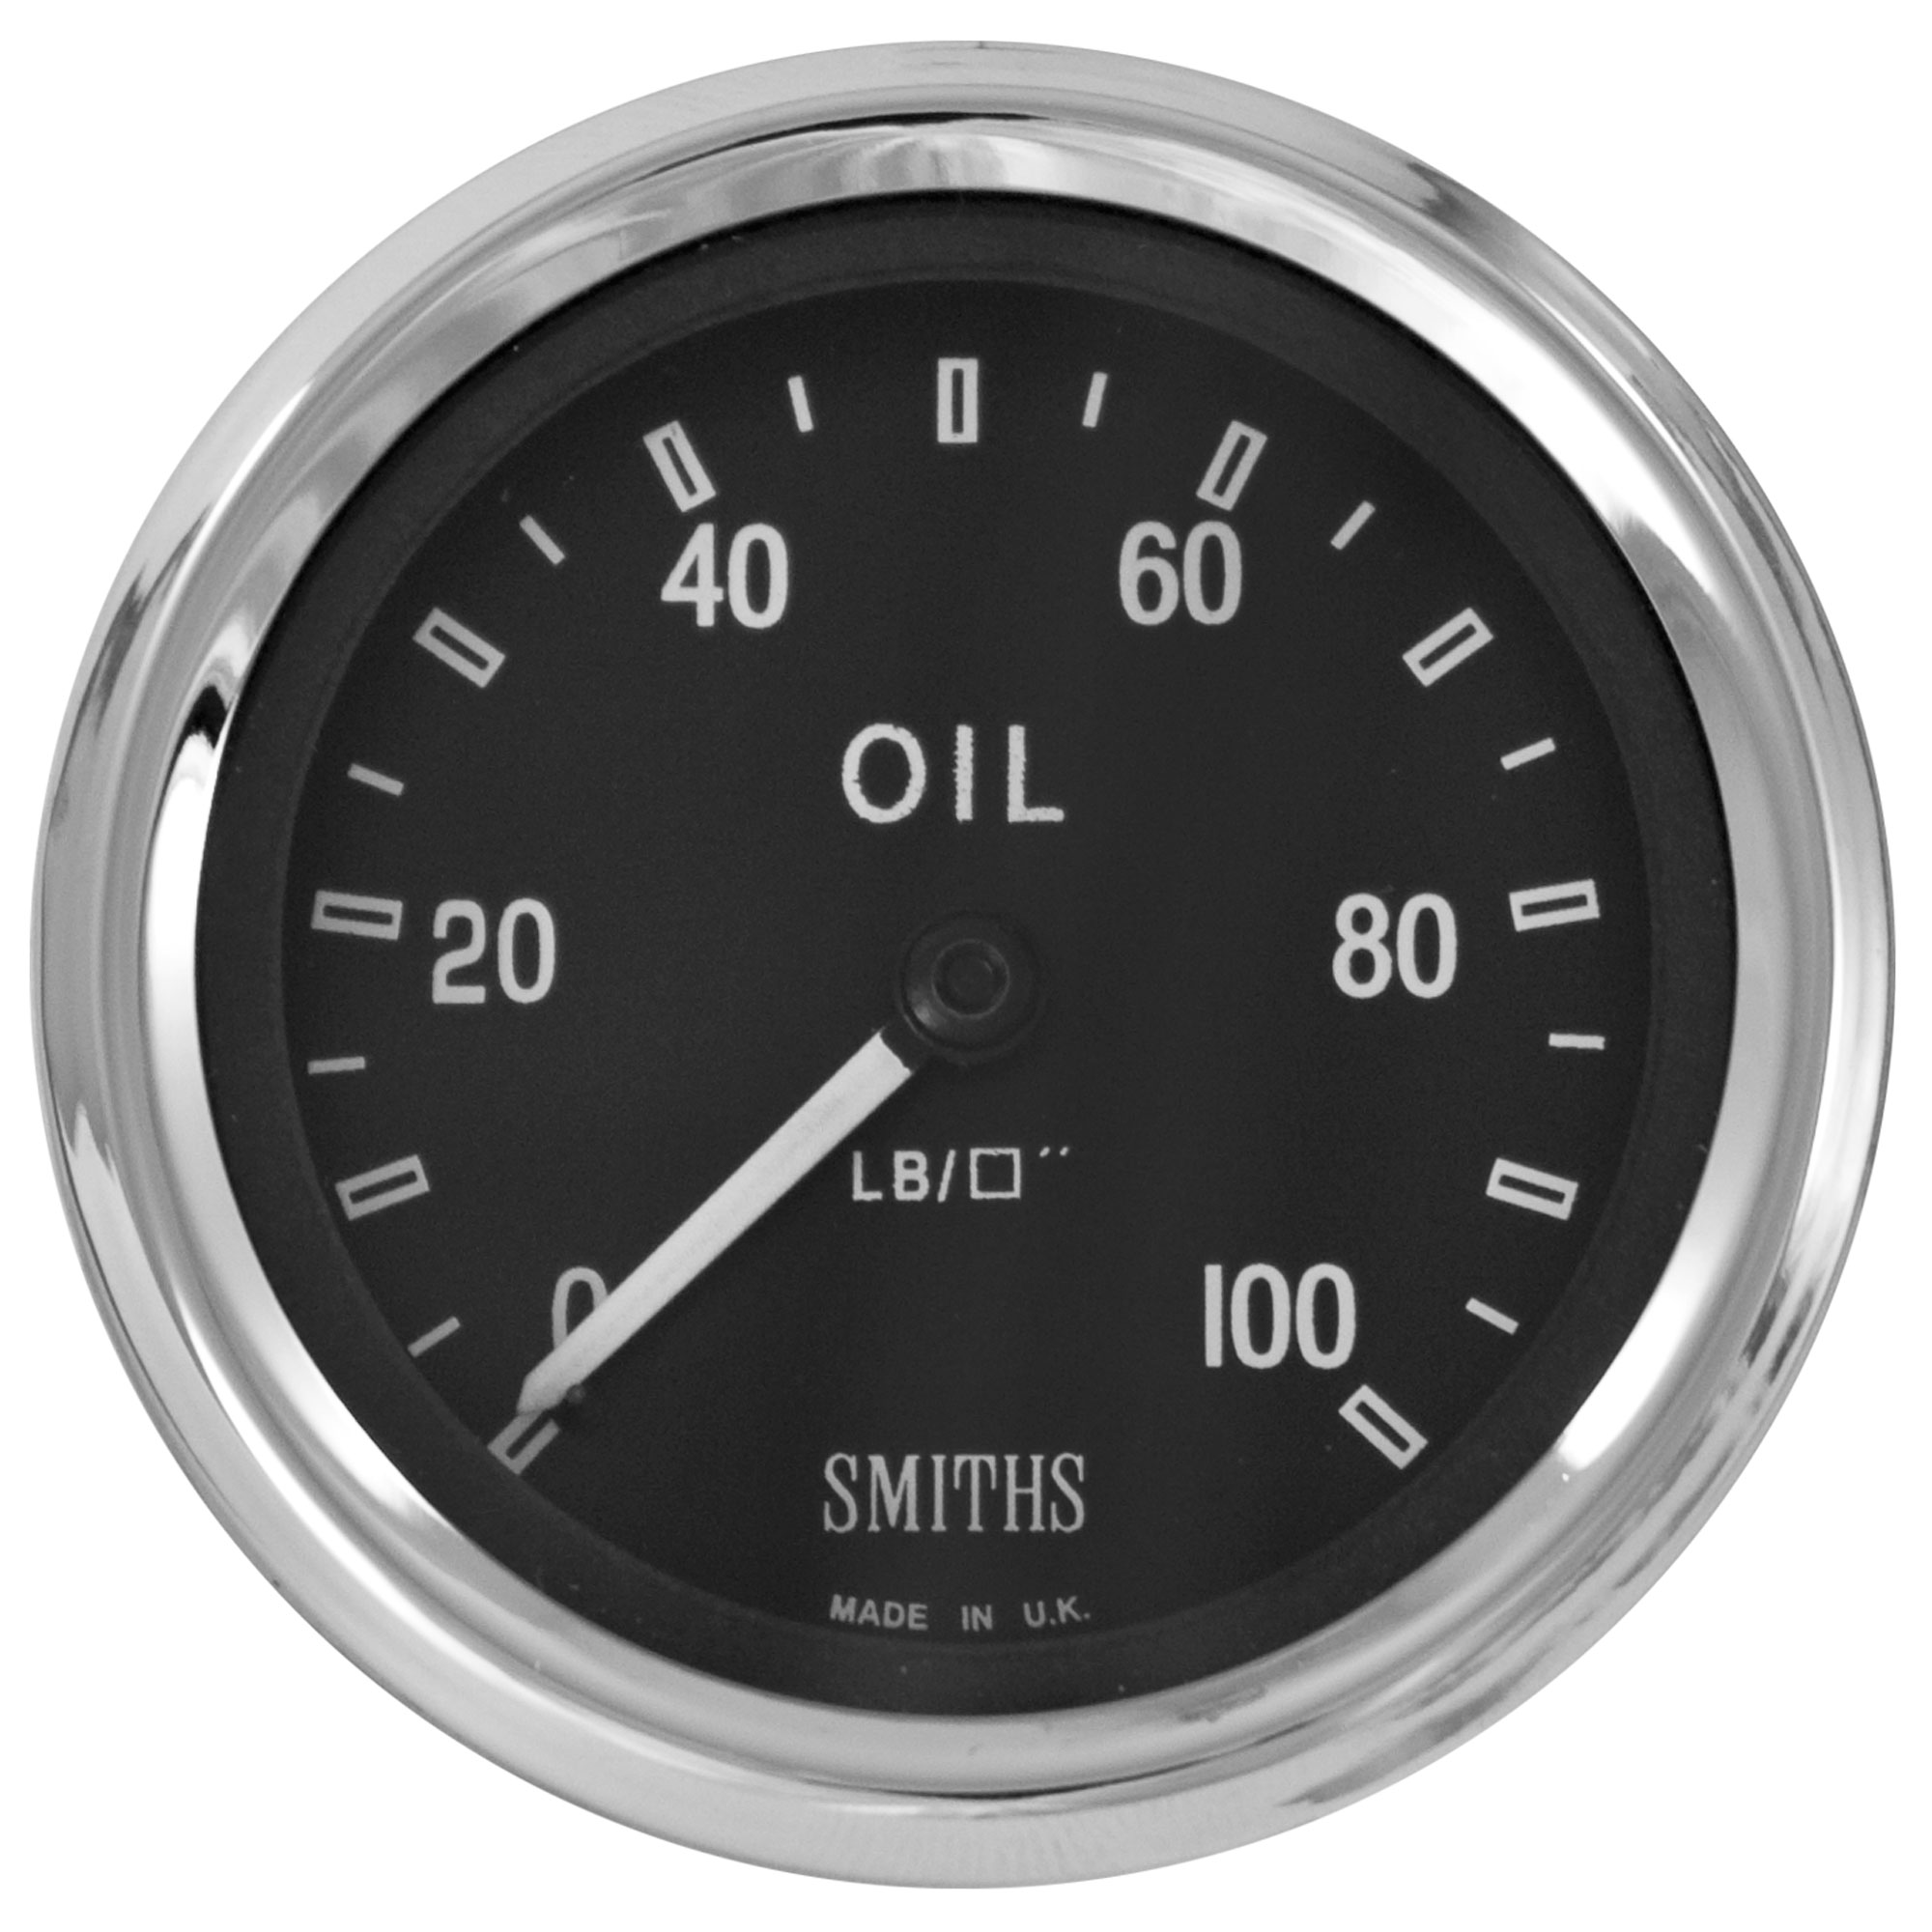 Smiths Classic Mechanical Oil Pressure Gauge Magnolia Dial Face//Chrome Bezel